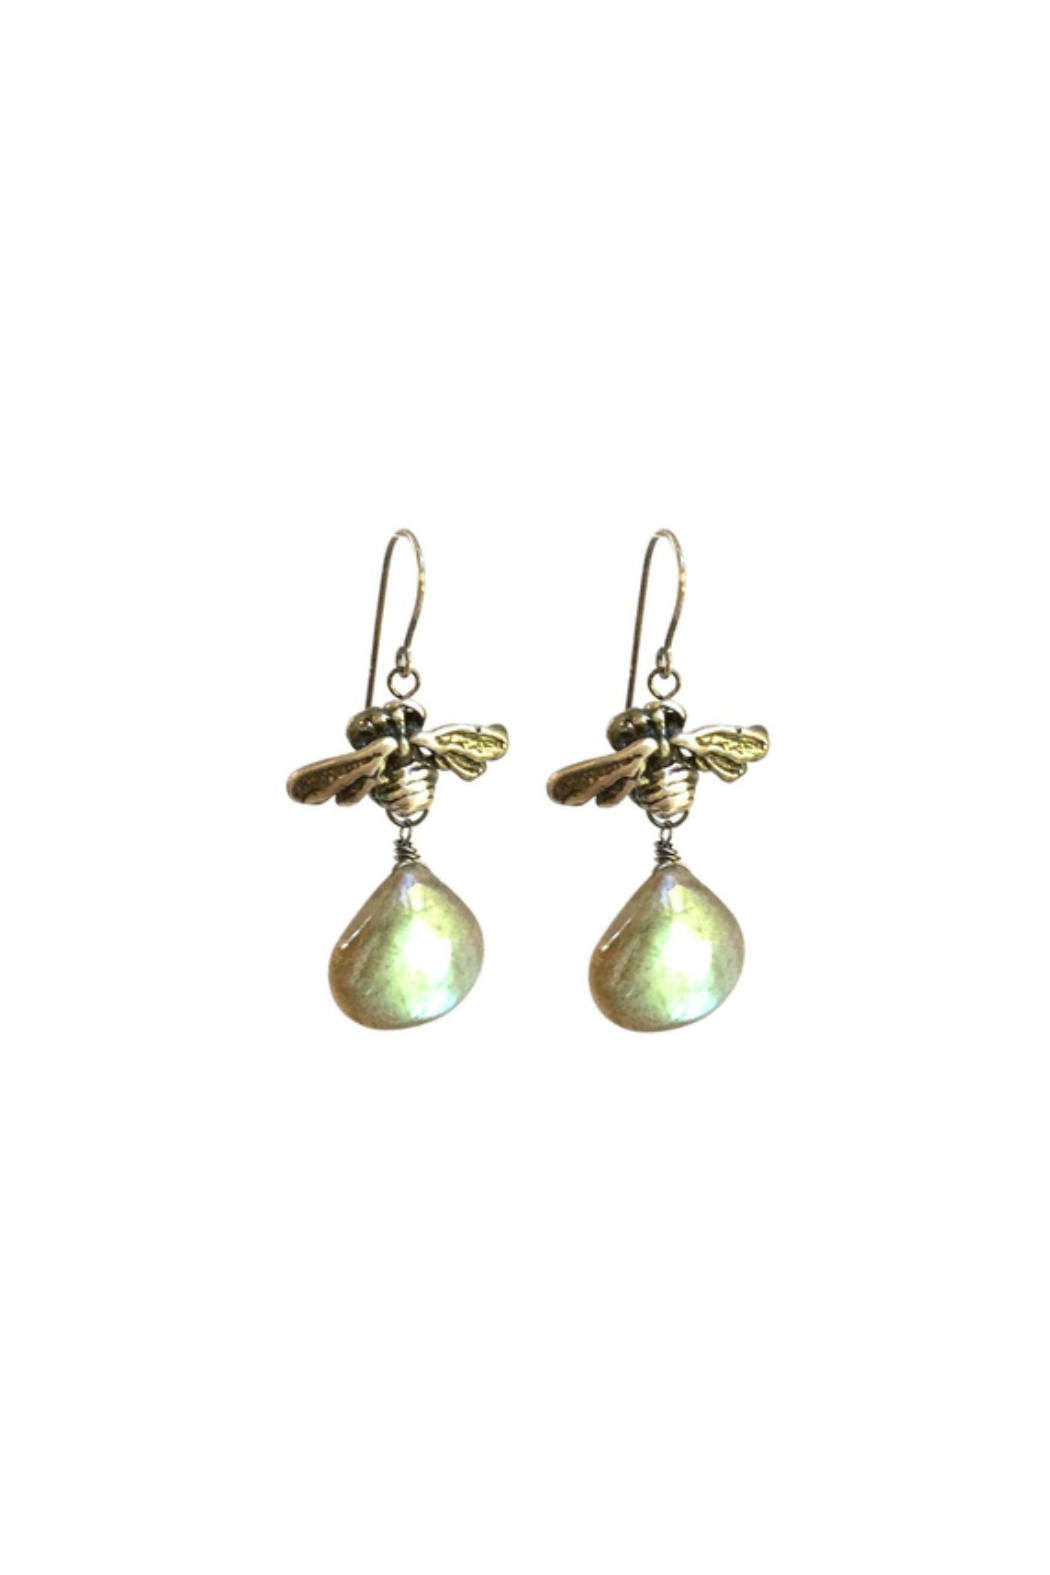 Susan Goodwin Jewelry Bee Labradorite Earrings - Main Image